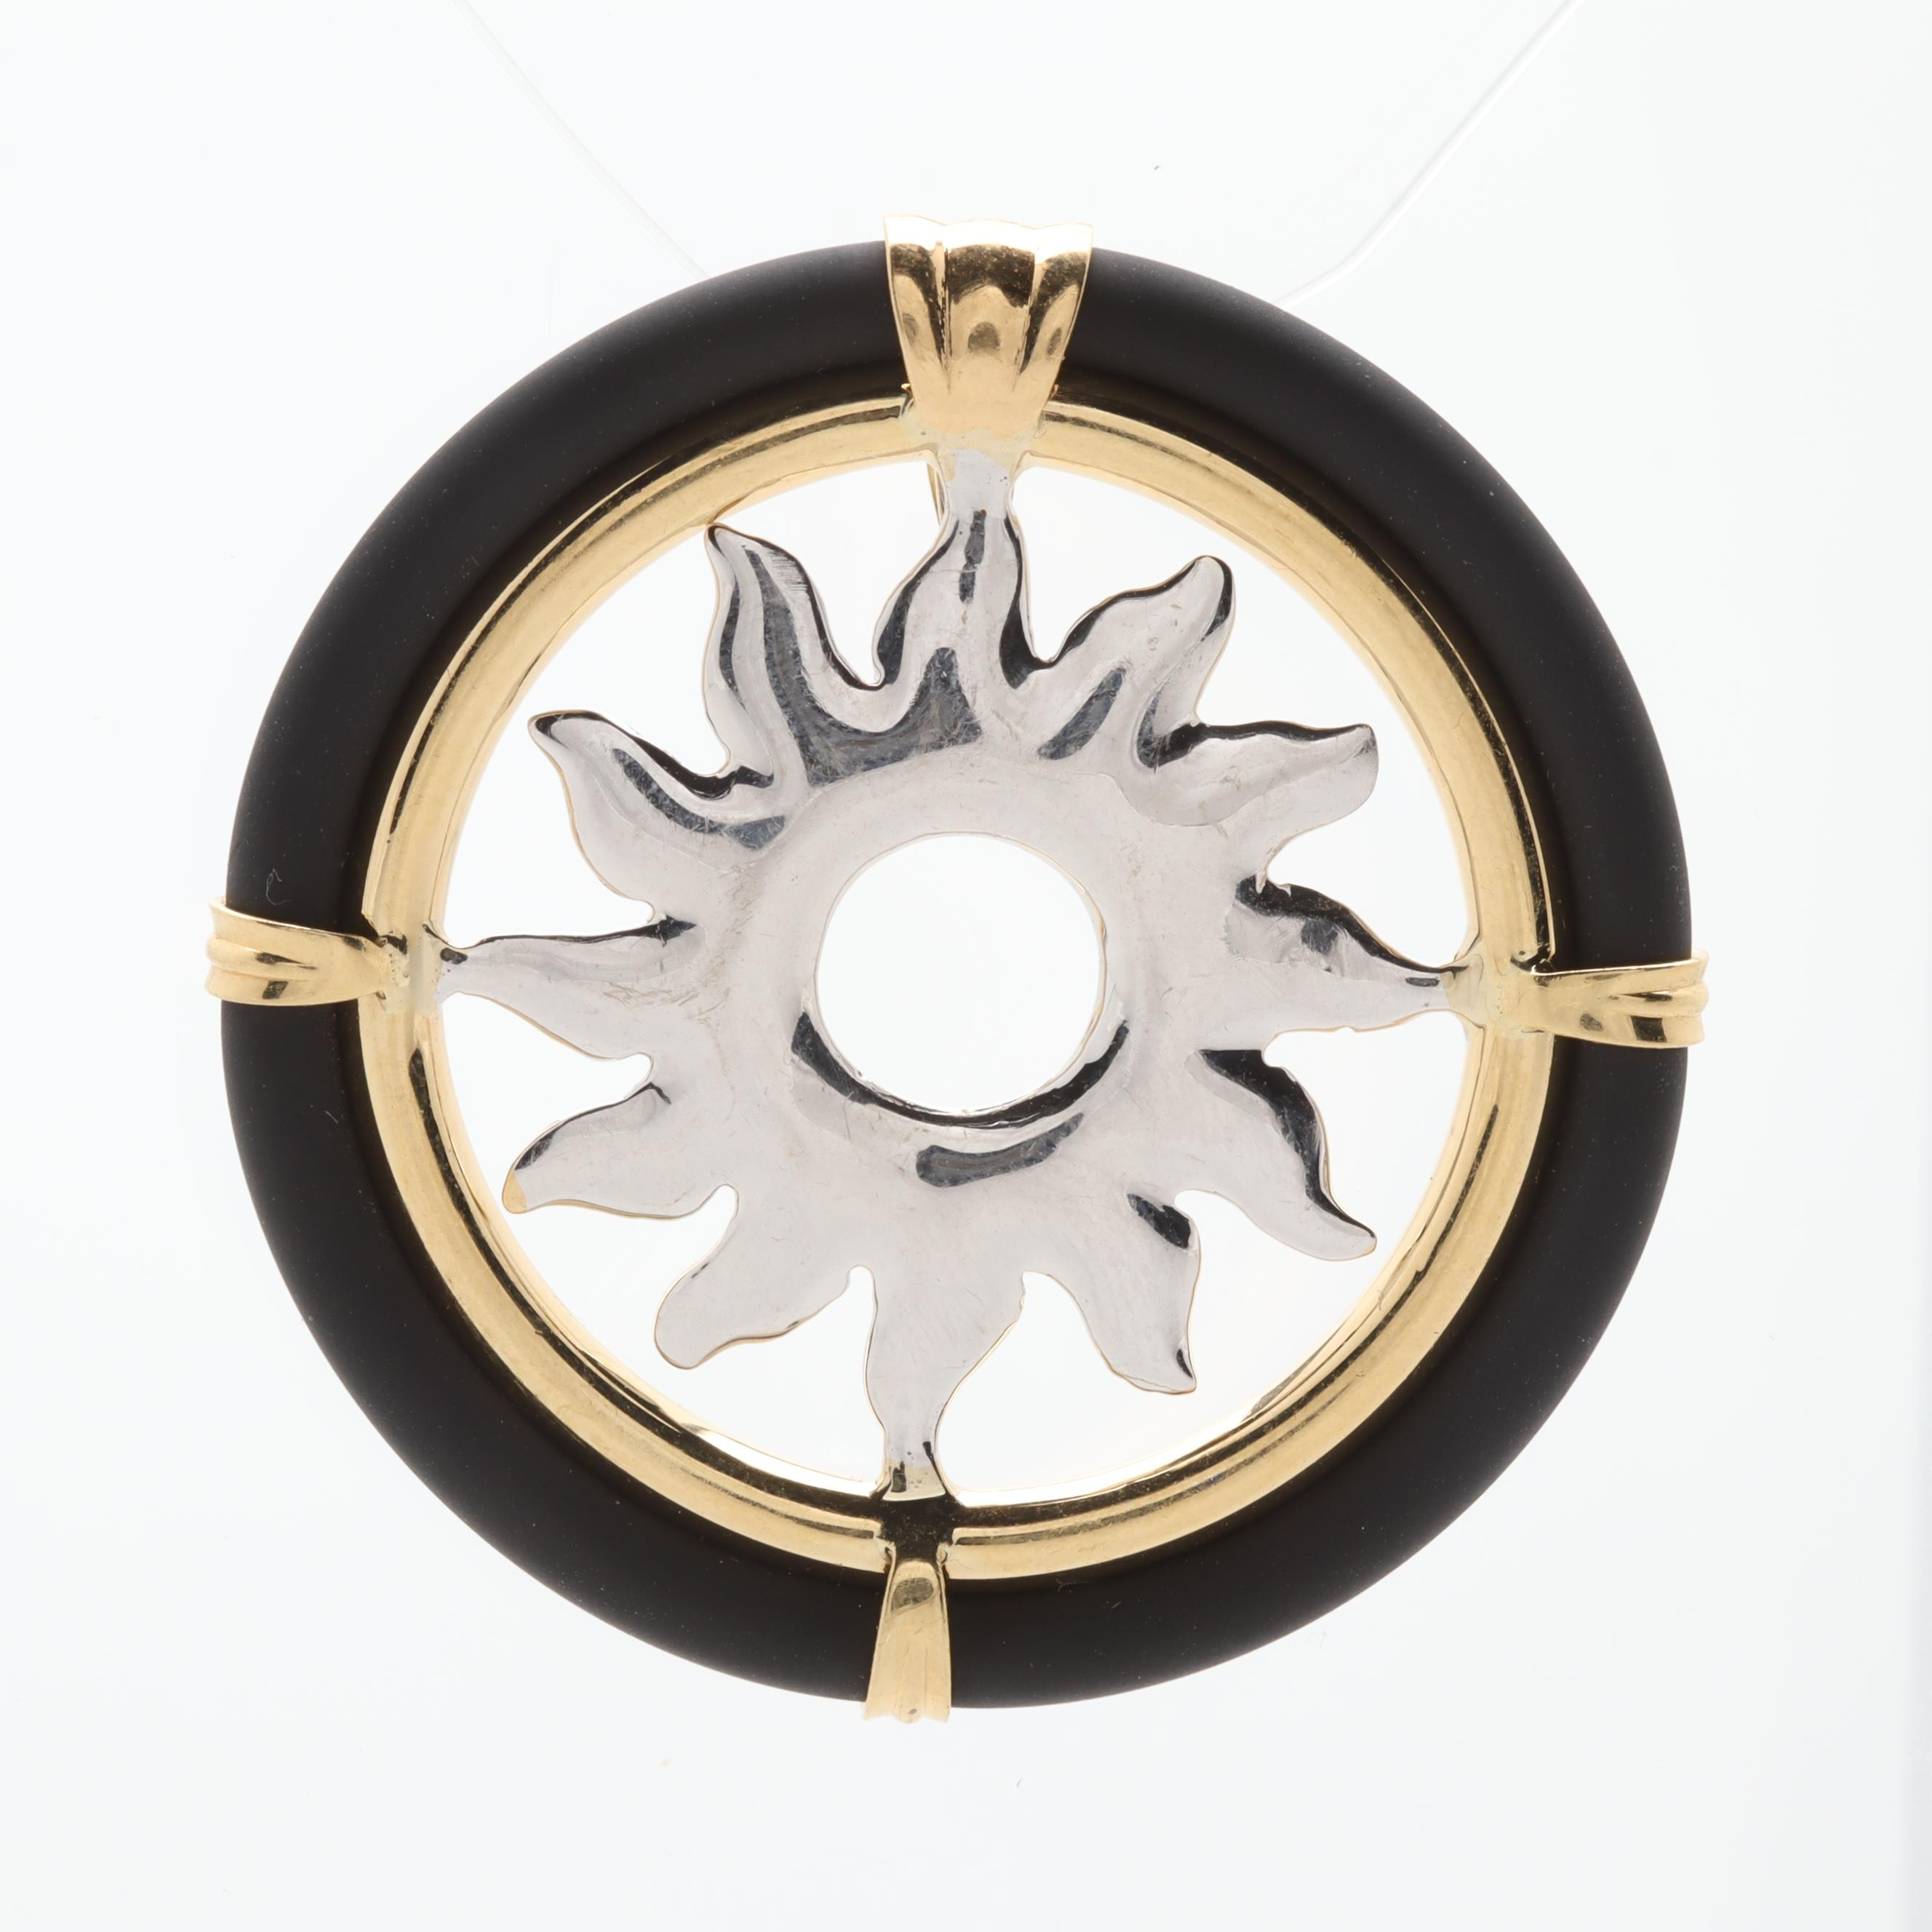 18K White and Yellow Gold Rubber Pendant